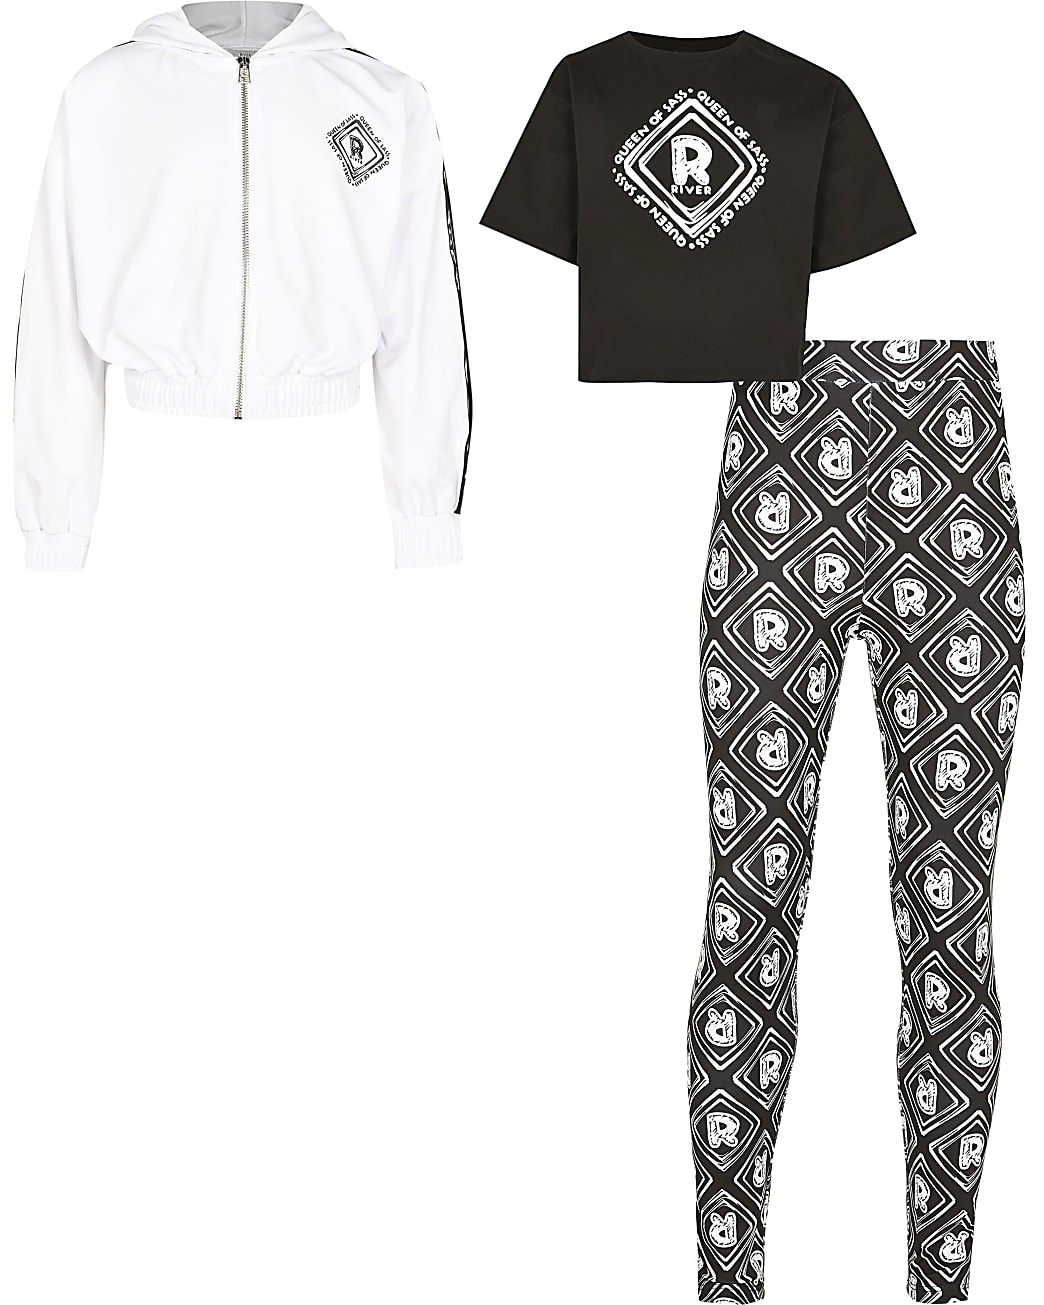 Girls black  'Queen of sass' 3 piece outfit